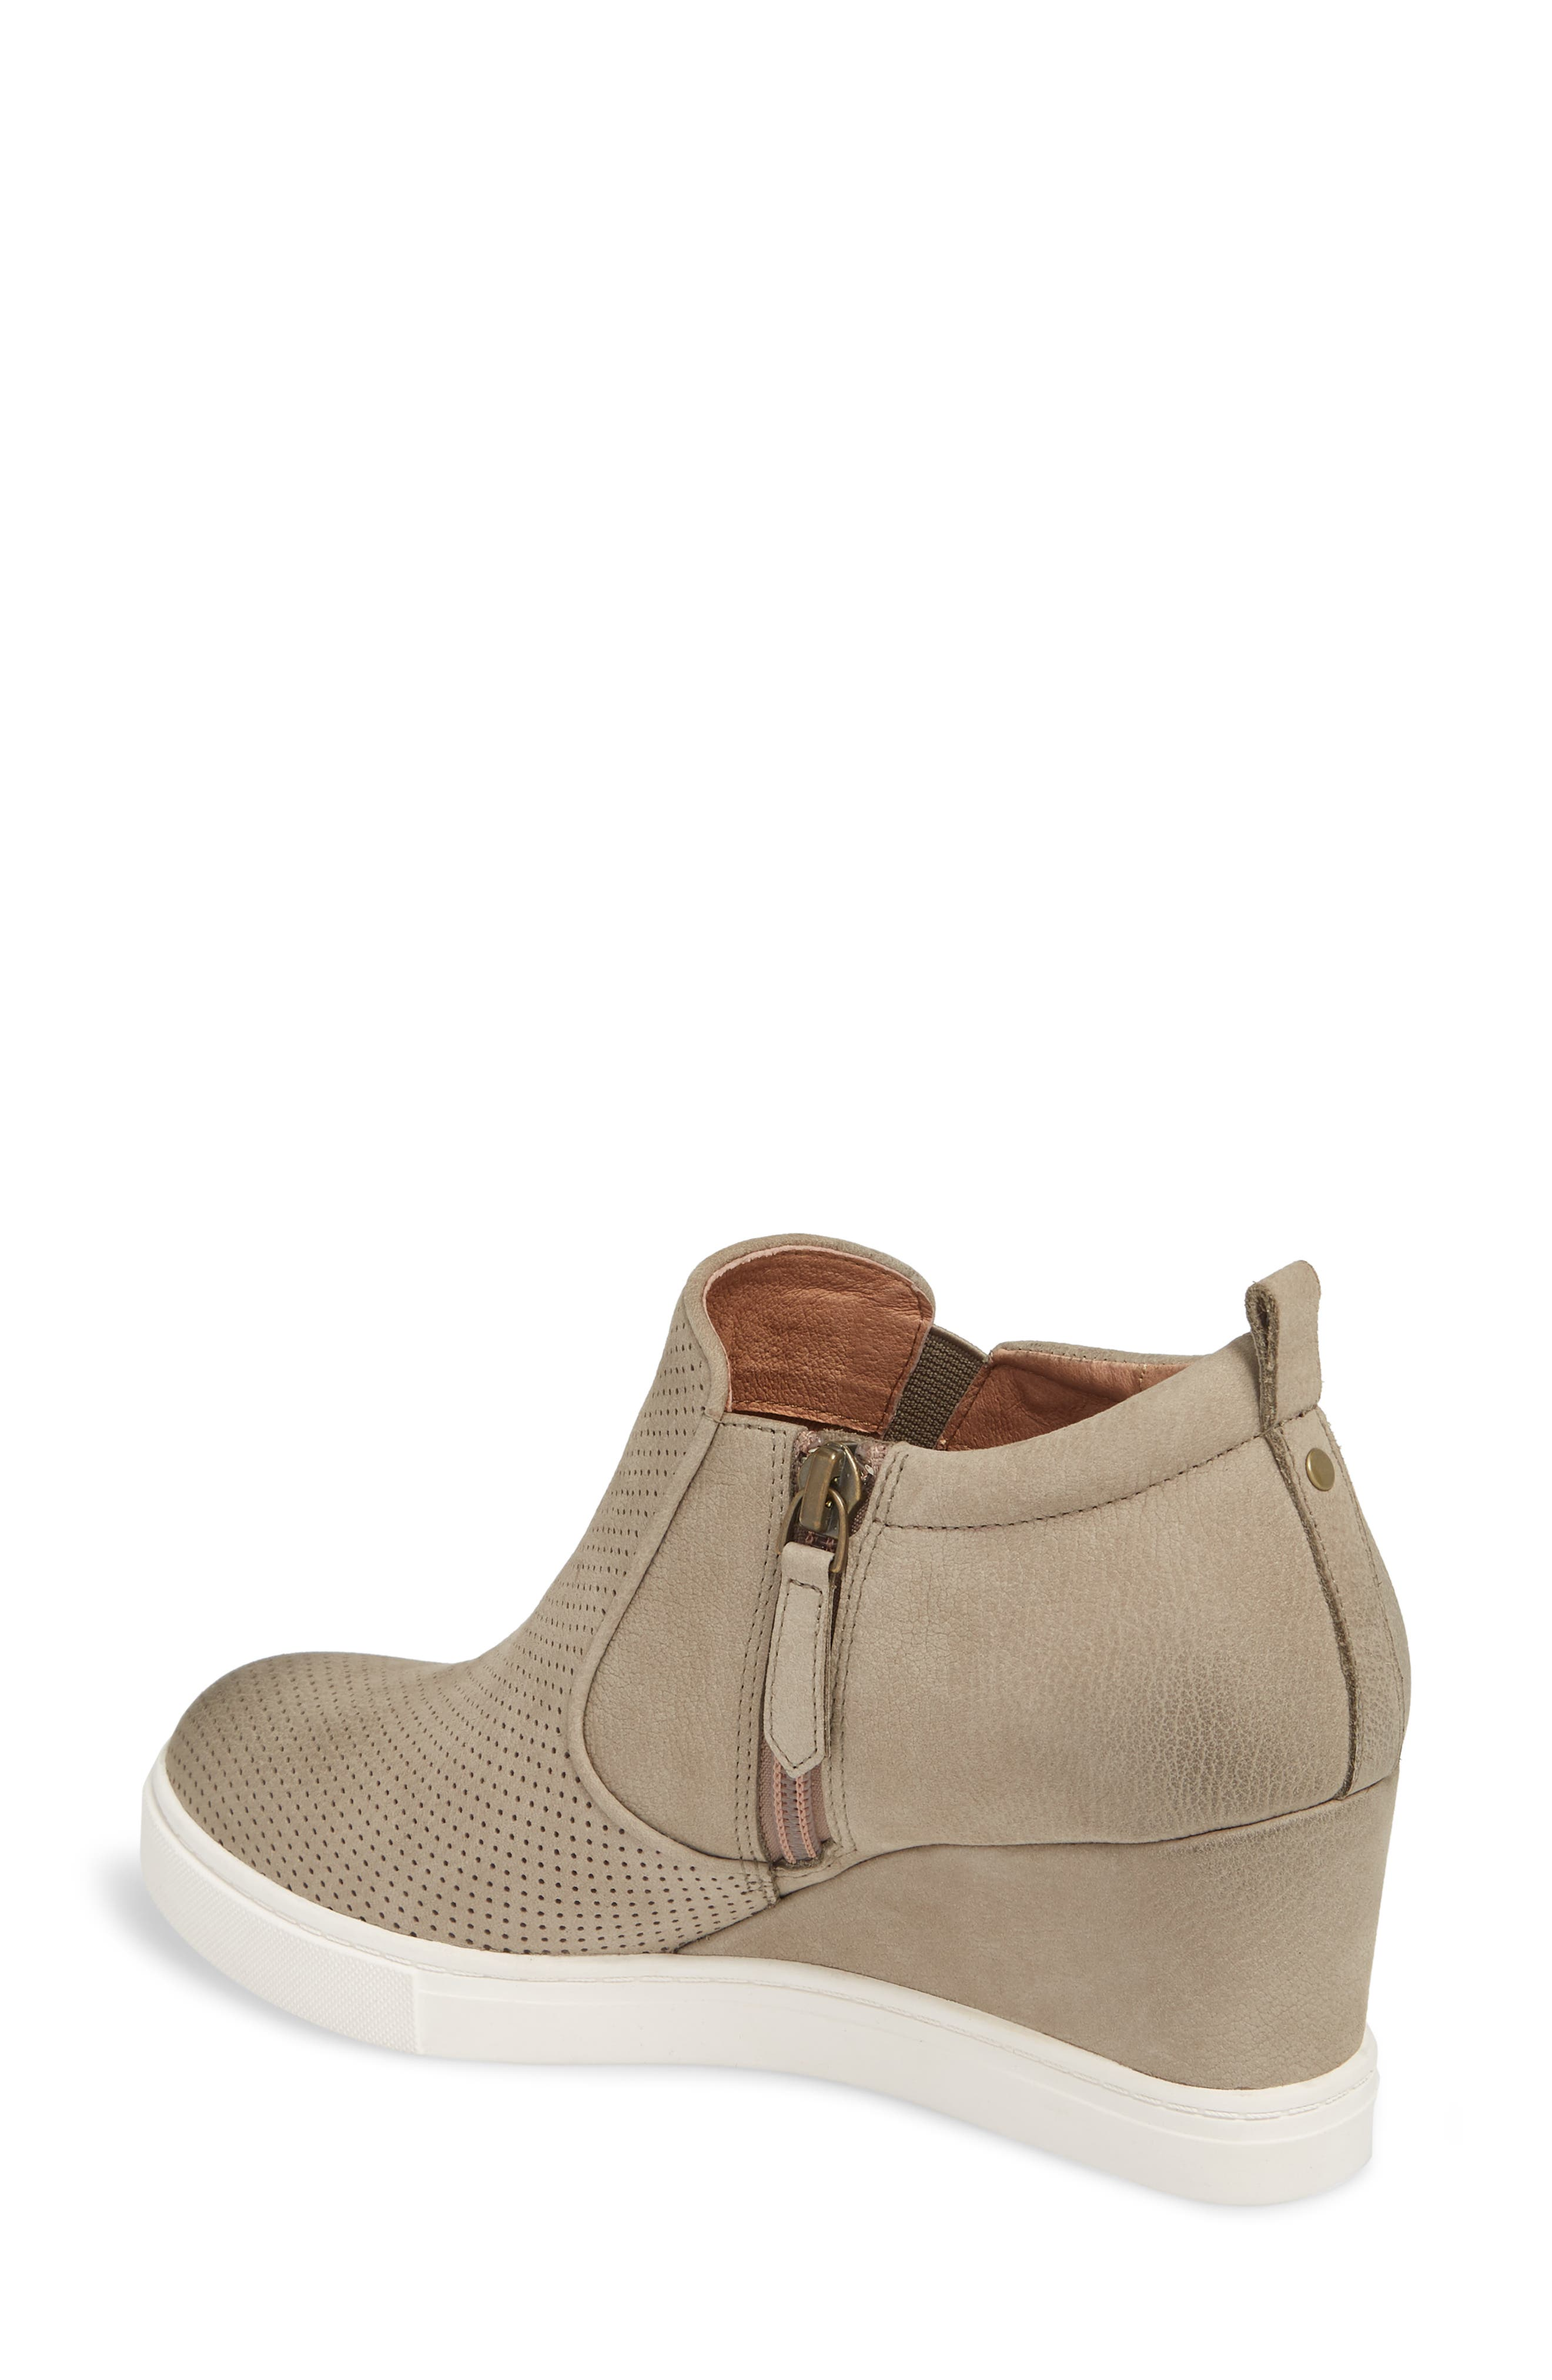 Aiden Wedge Sneaker,                             Alternate thumbnail 2, color,                             Taupe Perforated Leather